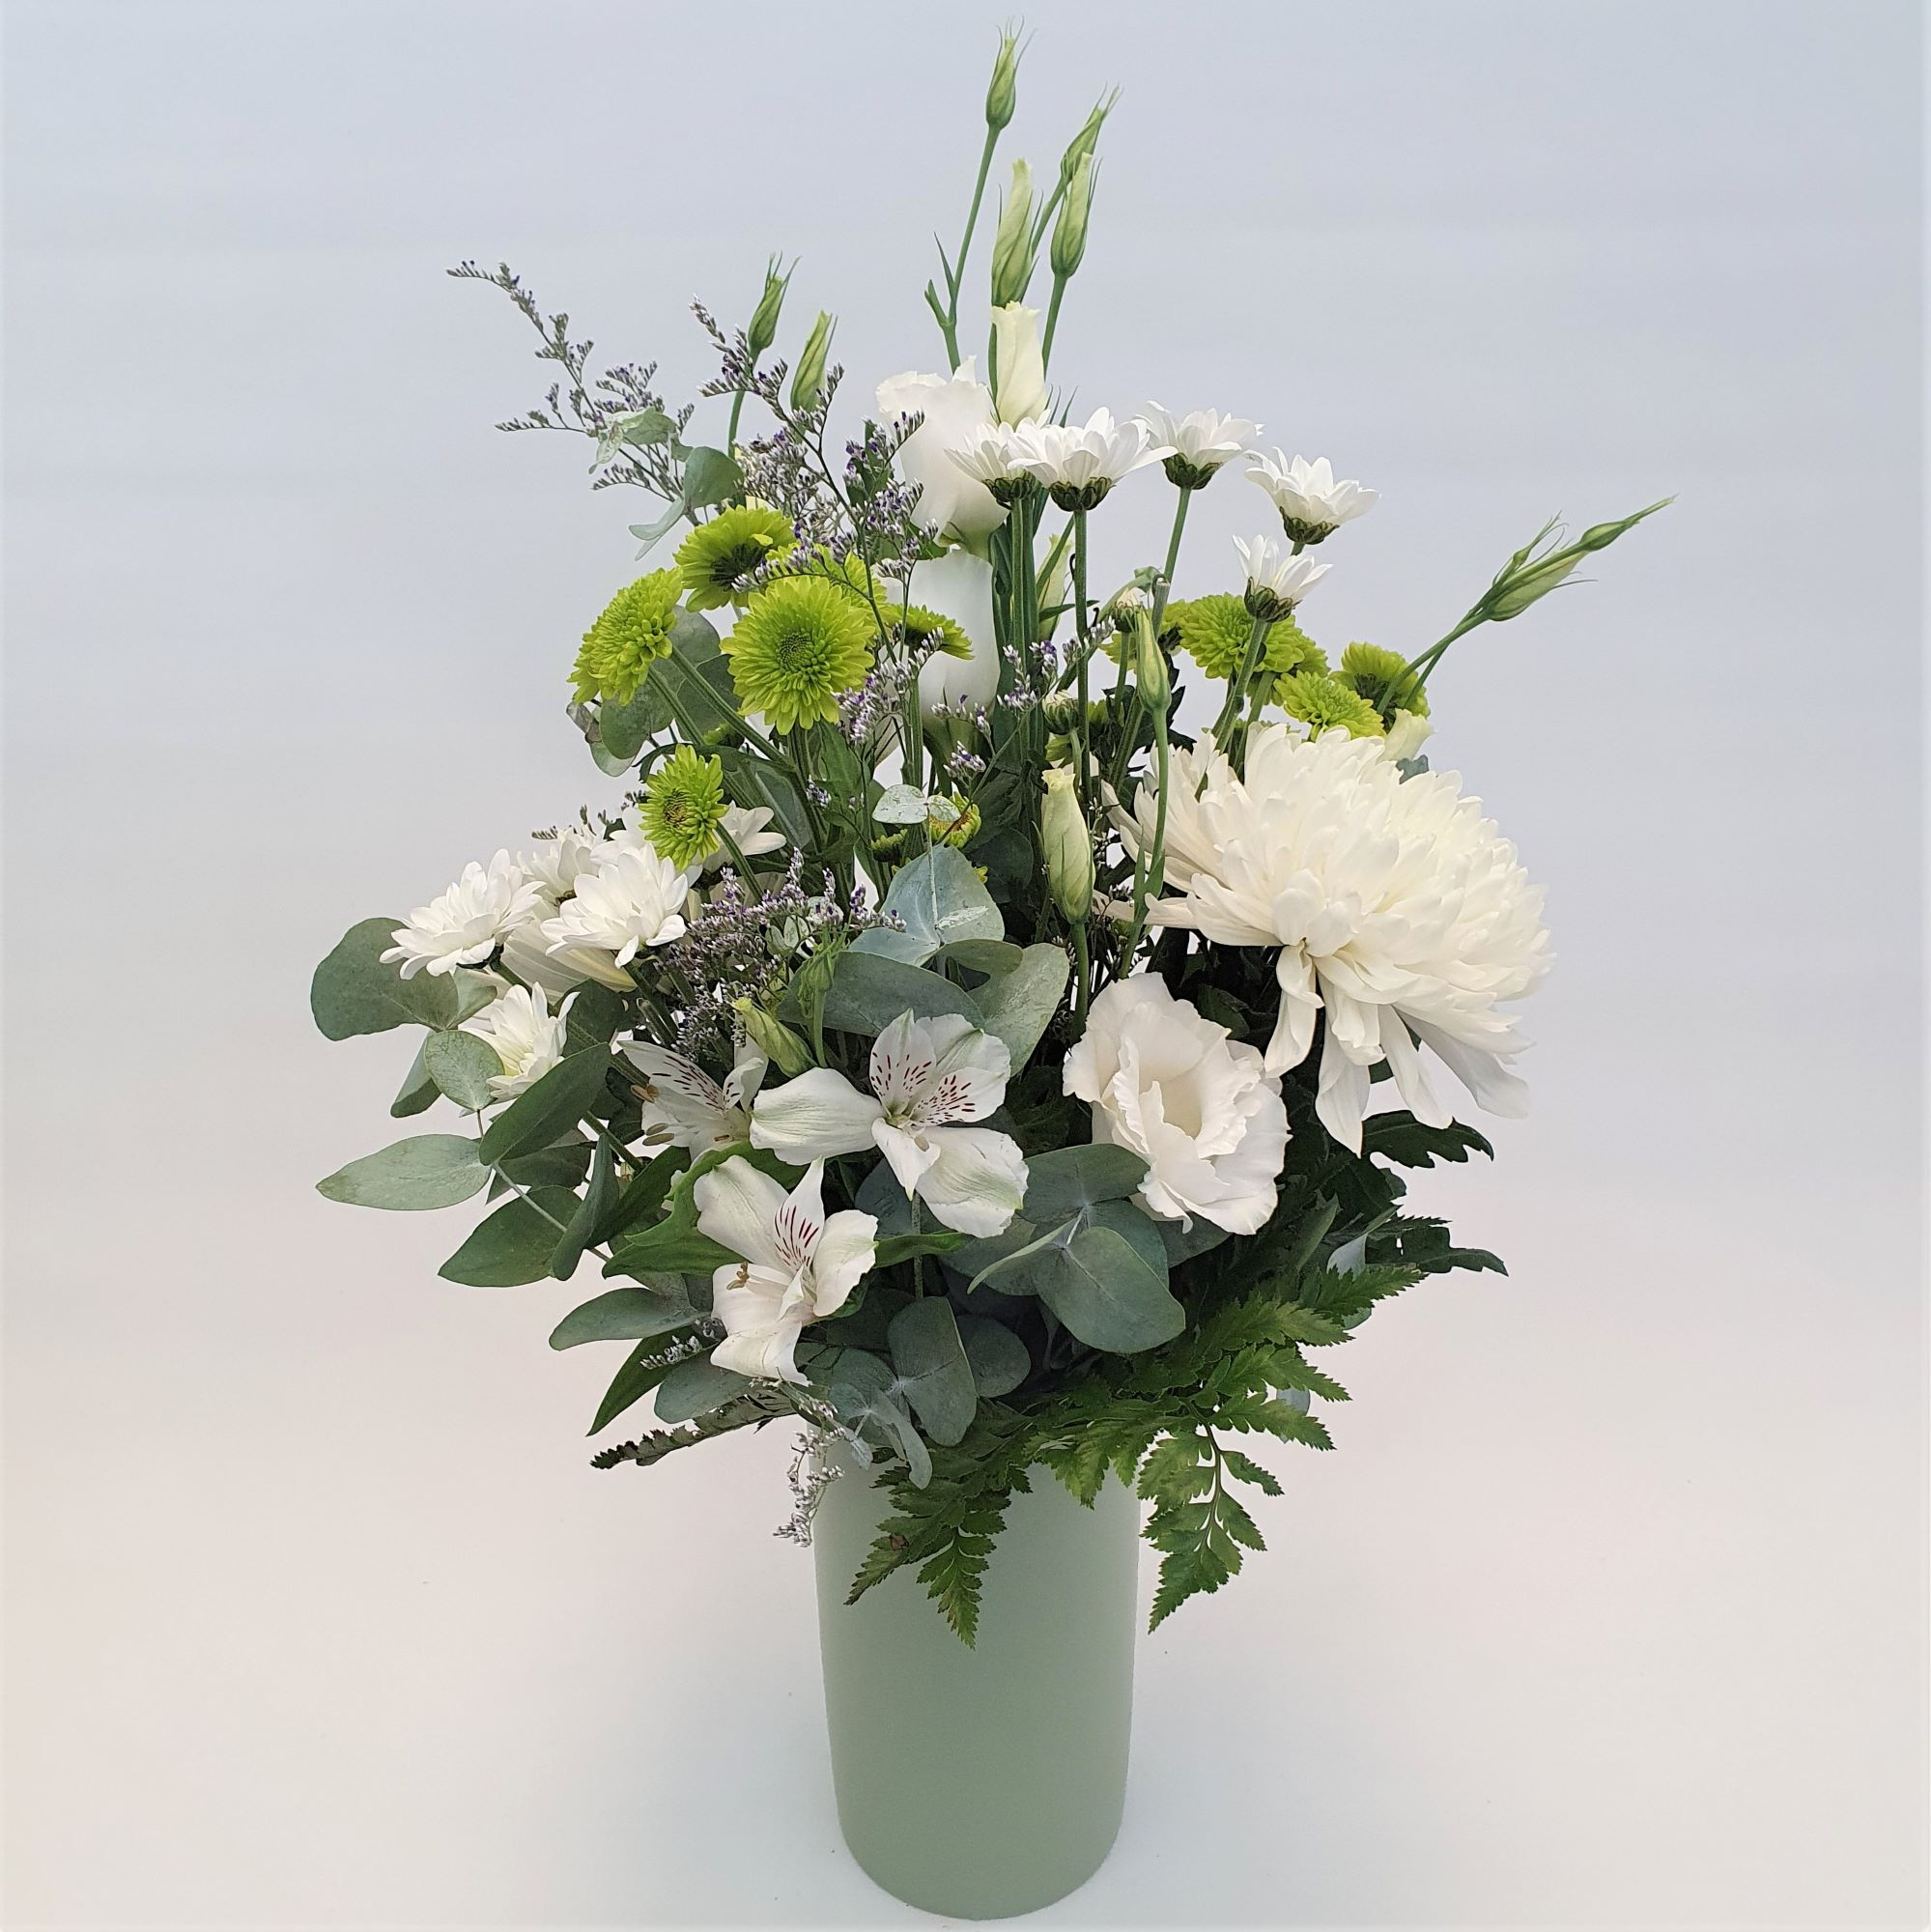 Sage - Green and white seasonal flowers in a sage coloured ceramic vase - Birthday / Congratulations,Sympathy / Funerals,Any Occasion,Mothers Day